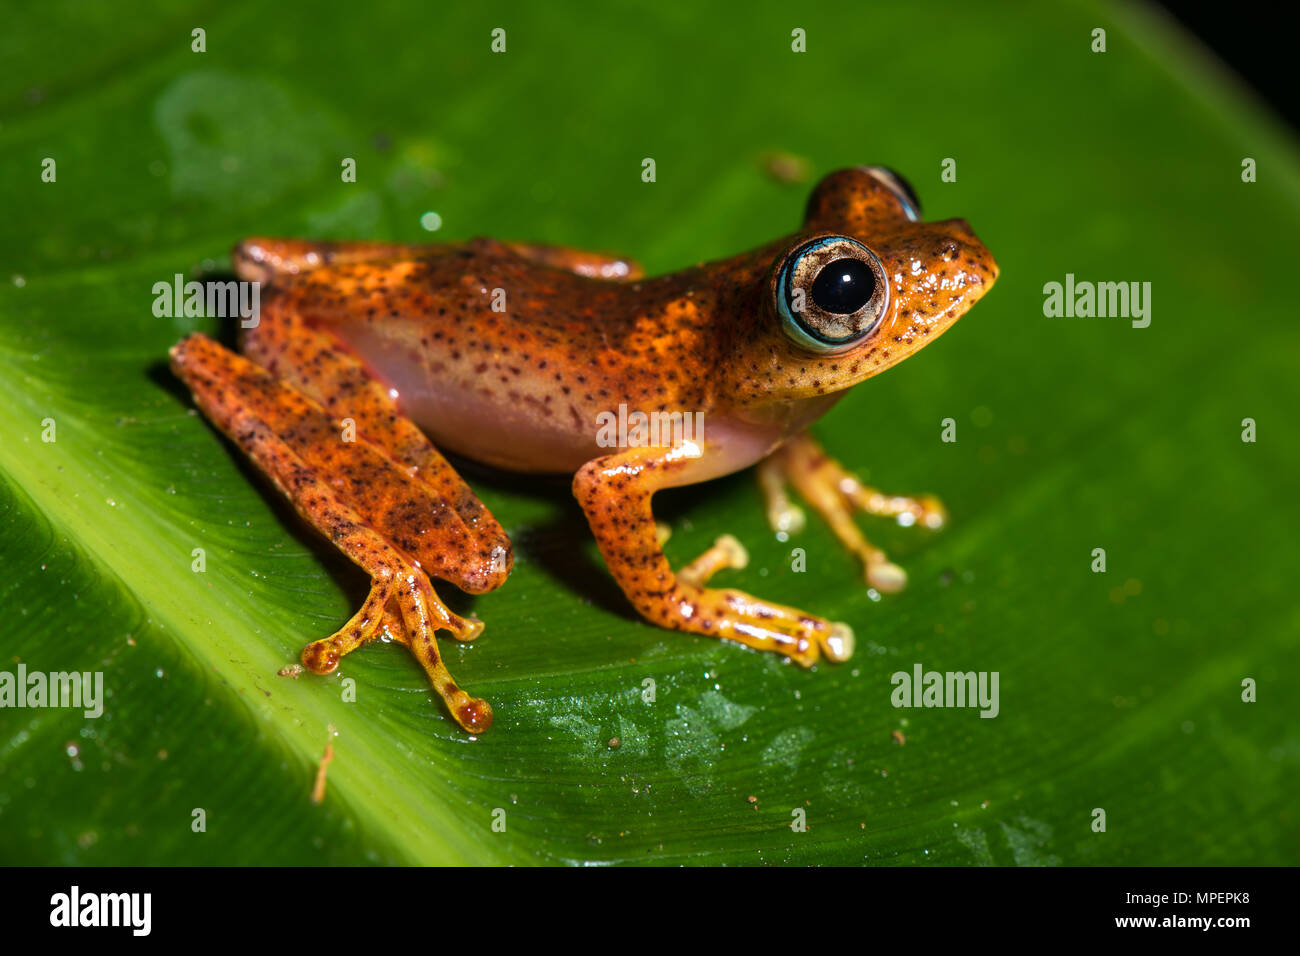 Tree climbing frog species (Boophis pyrrhus) sits on leaf, Andasibe National Park, Madagascar Stock Photo